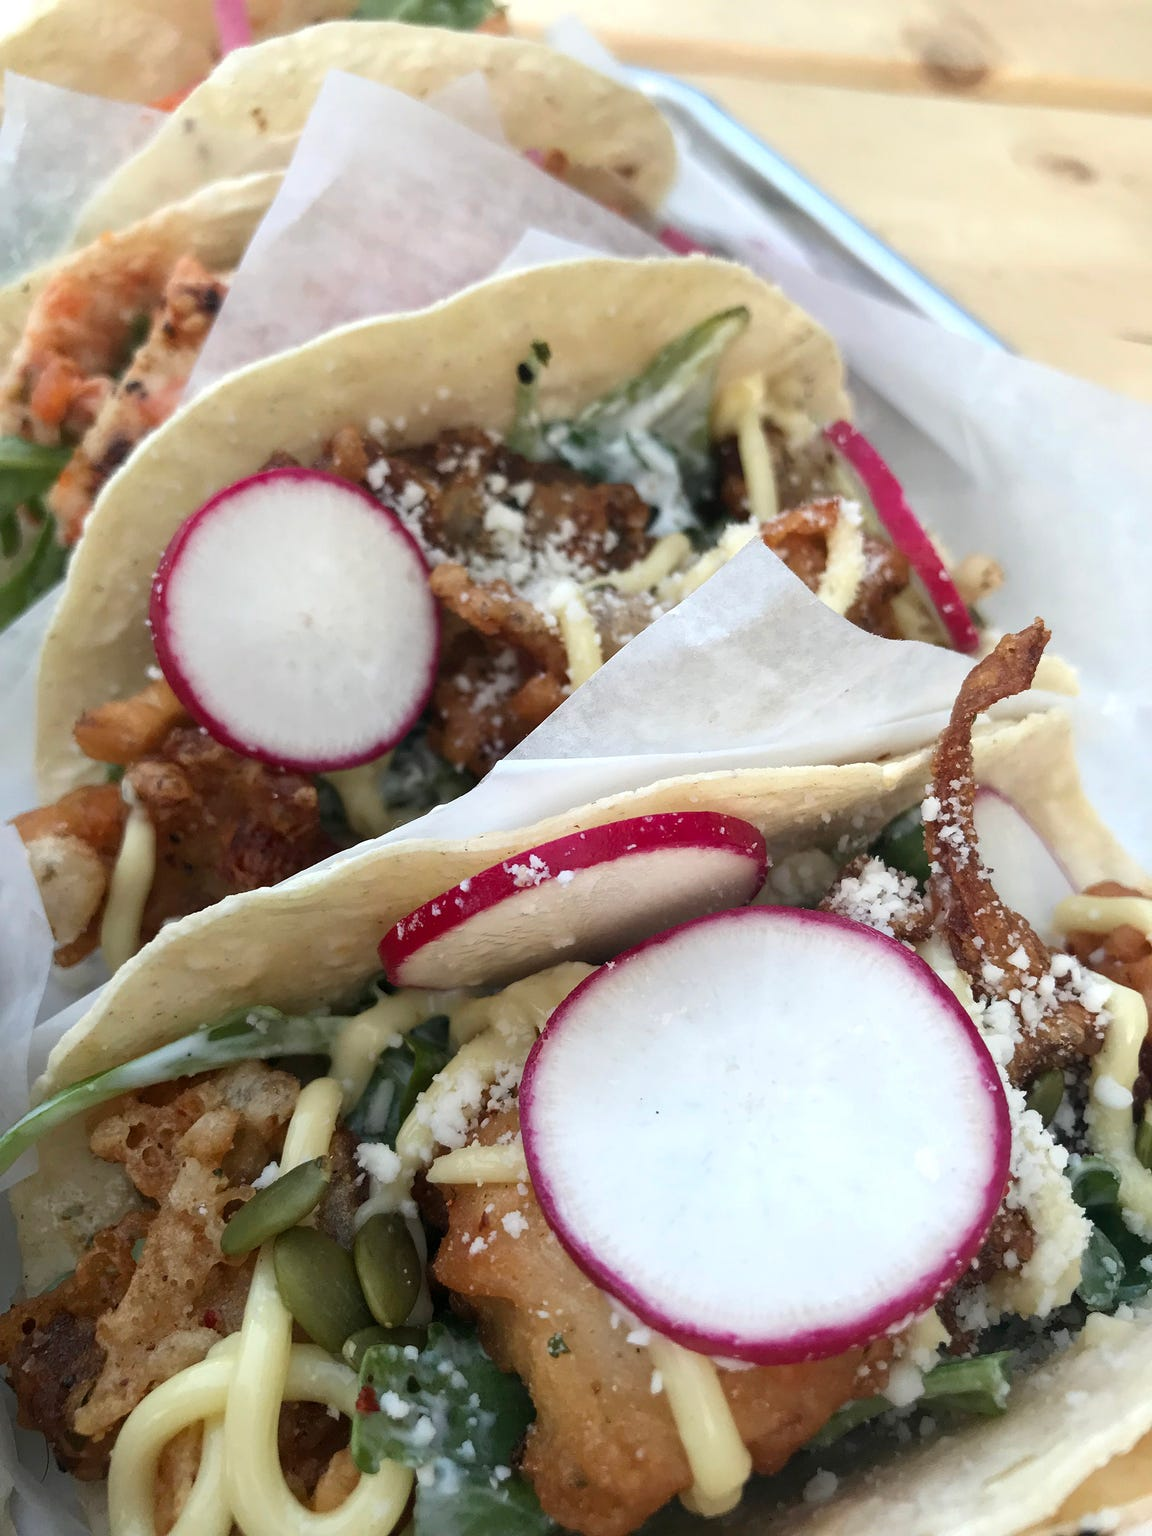 Crisp radish garnishes nearly all of the tacos by the Taco Moto food truck, which is parked outside Boone & Crockett bar at 818 S. Water St. in Milwaukee's Harbor District.